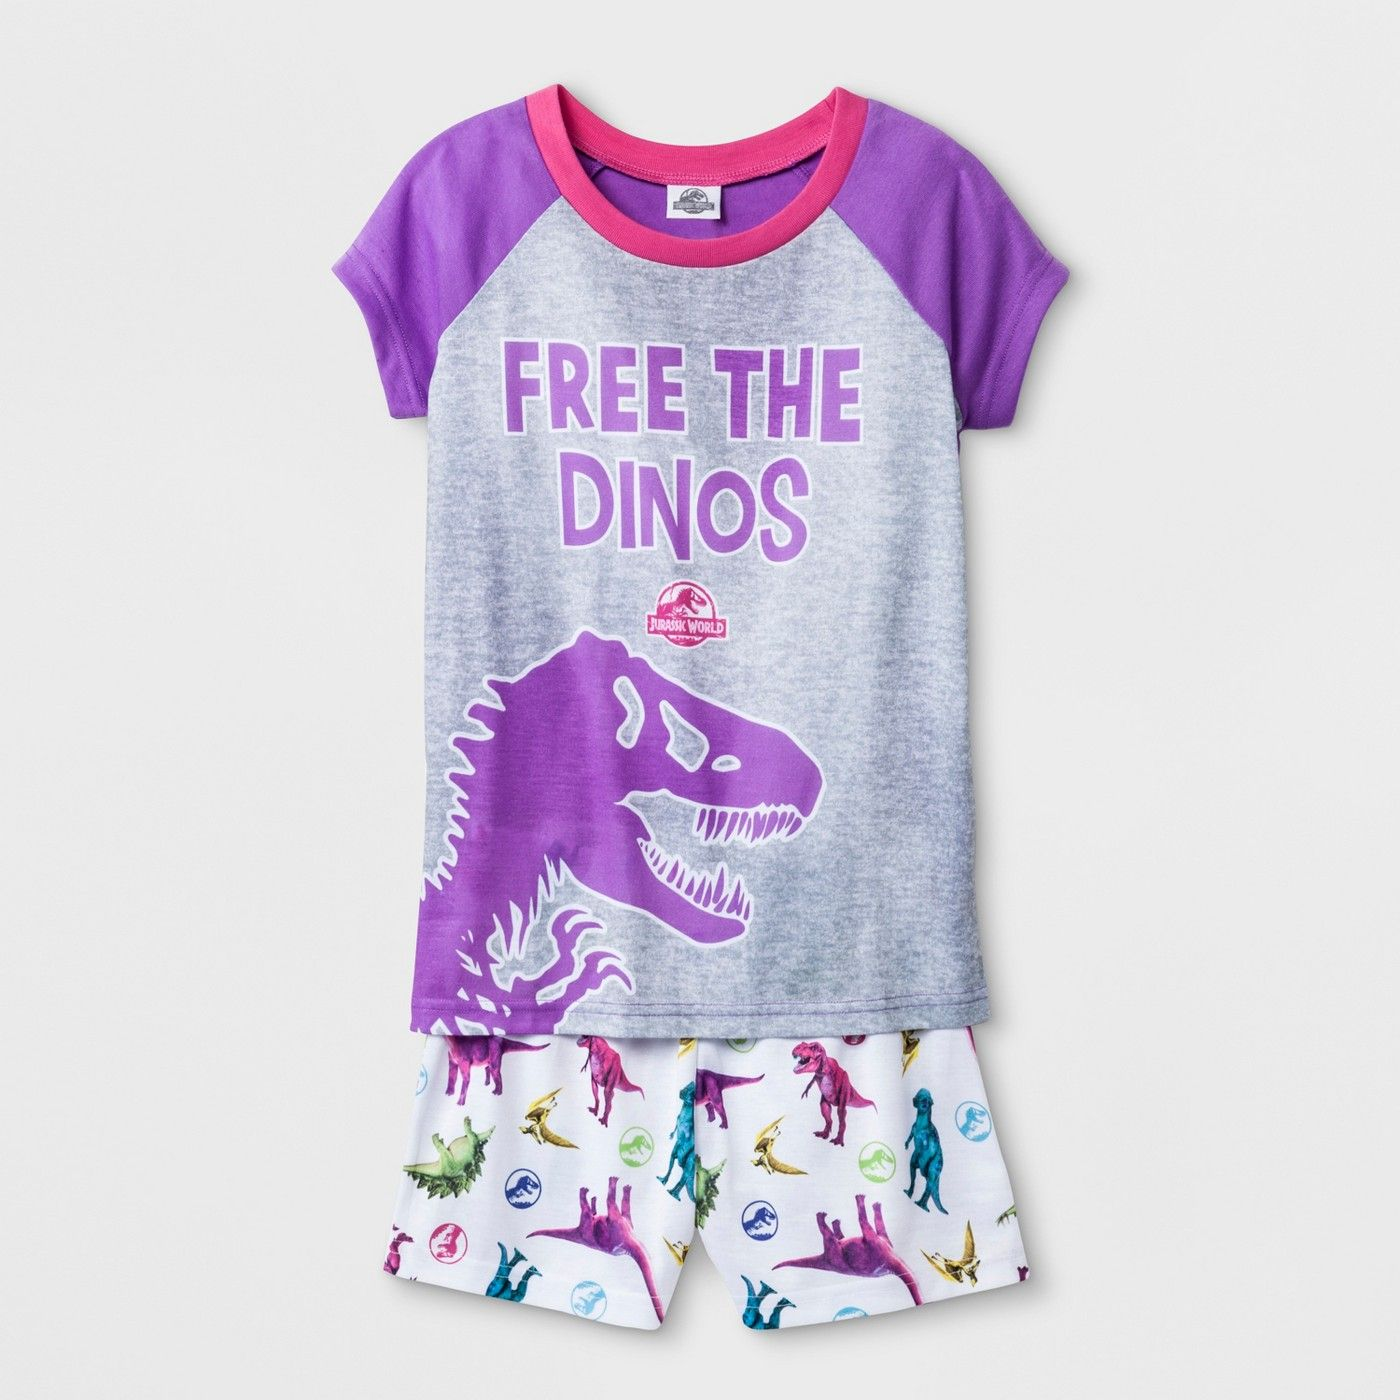 2d85f5af0 Girls  Jurassic World  Free The Dinos  2pc Pajama Set - Purple M  World